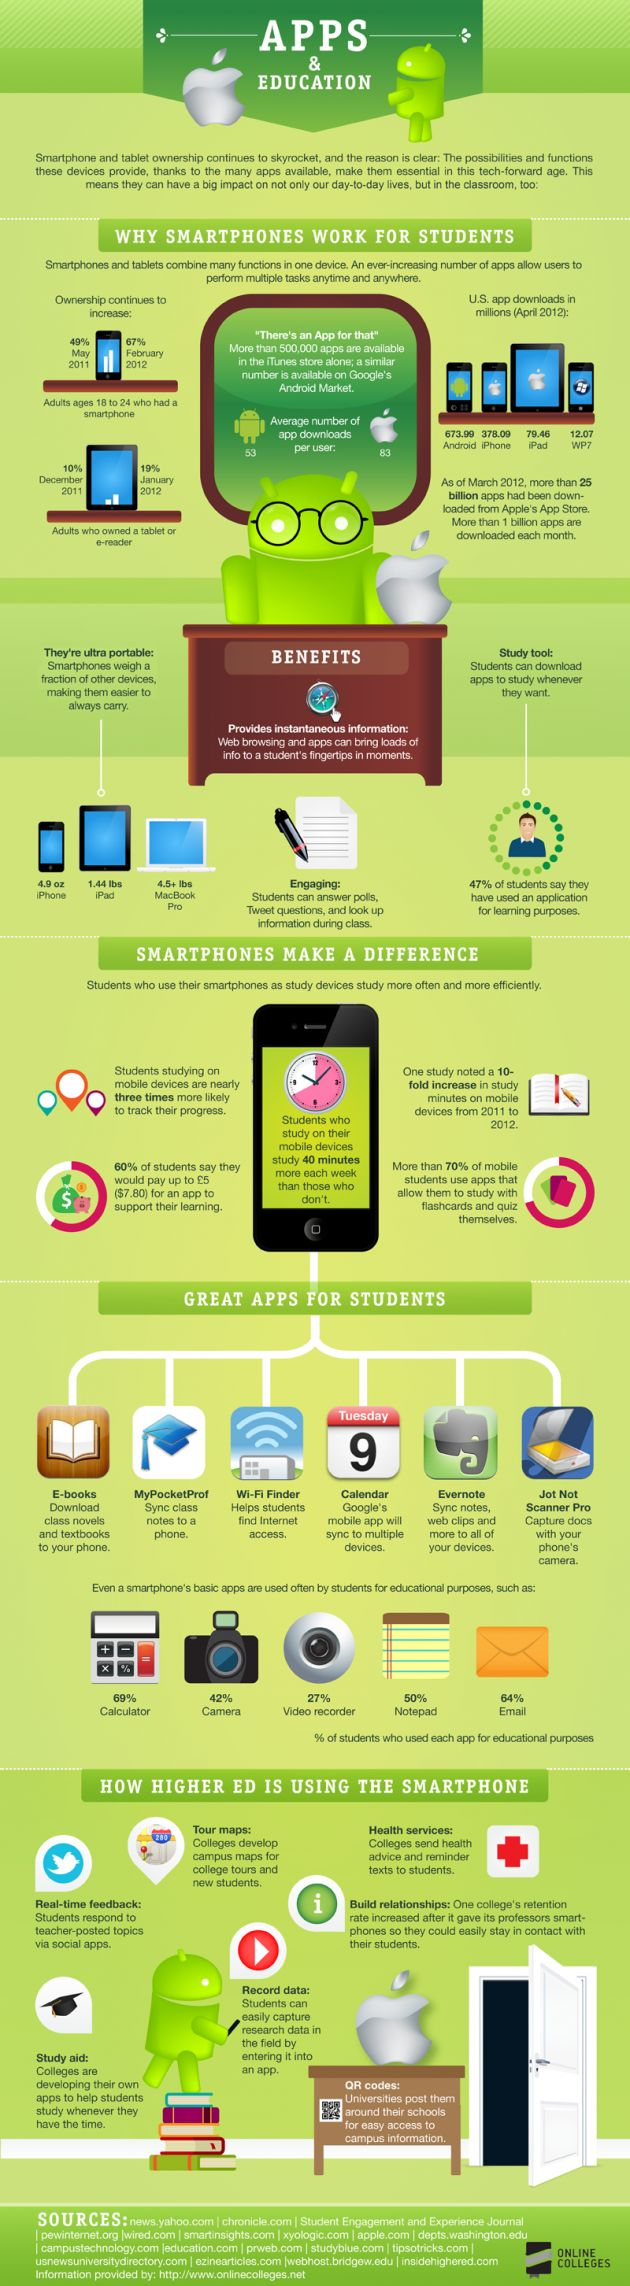 Educational Apps are making a big impact on students! So send in your old tech to Tech Twurl to get money to pay for a newer device that takes advantage of today's newest Apps!  Top Dollar For Your Tech! - www.TechTwurl.com